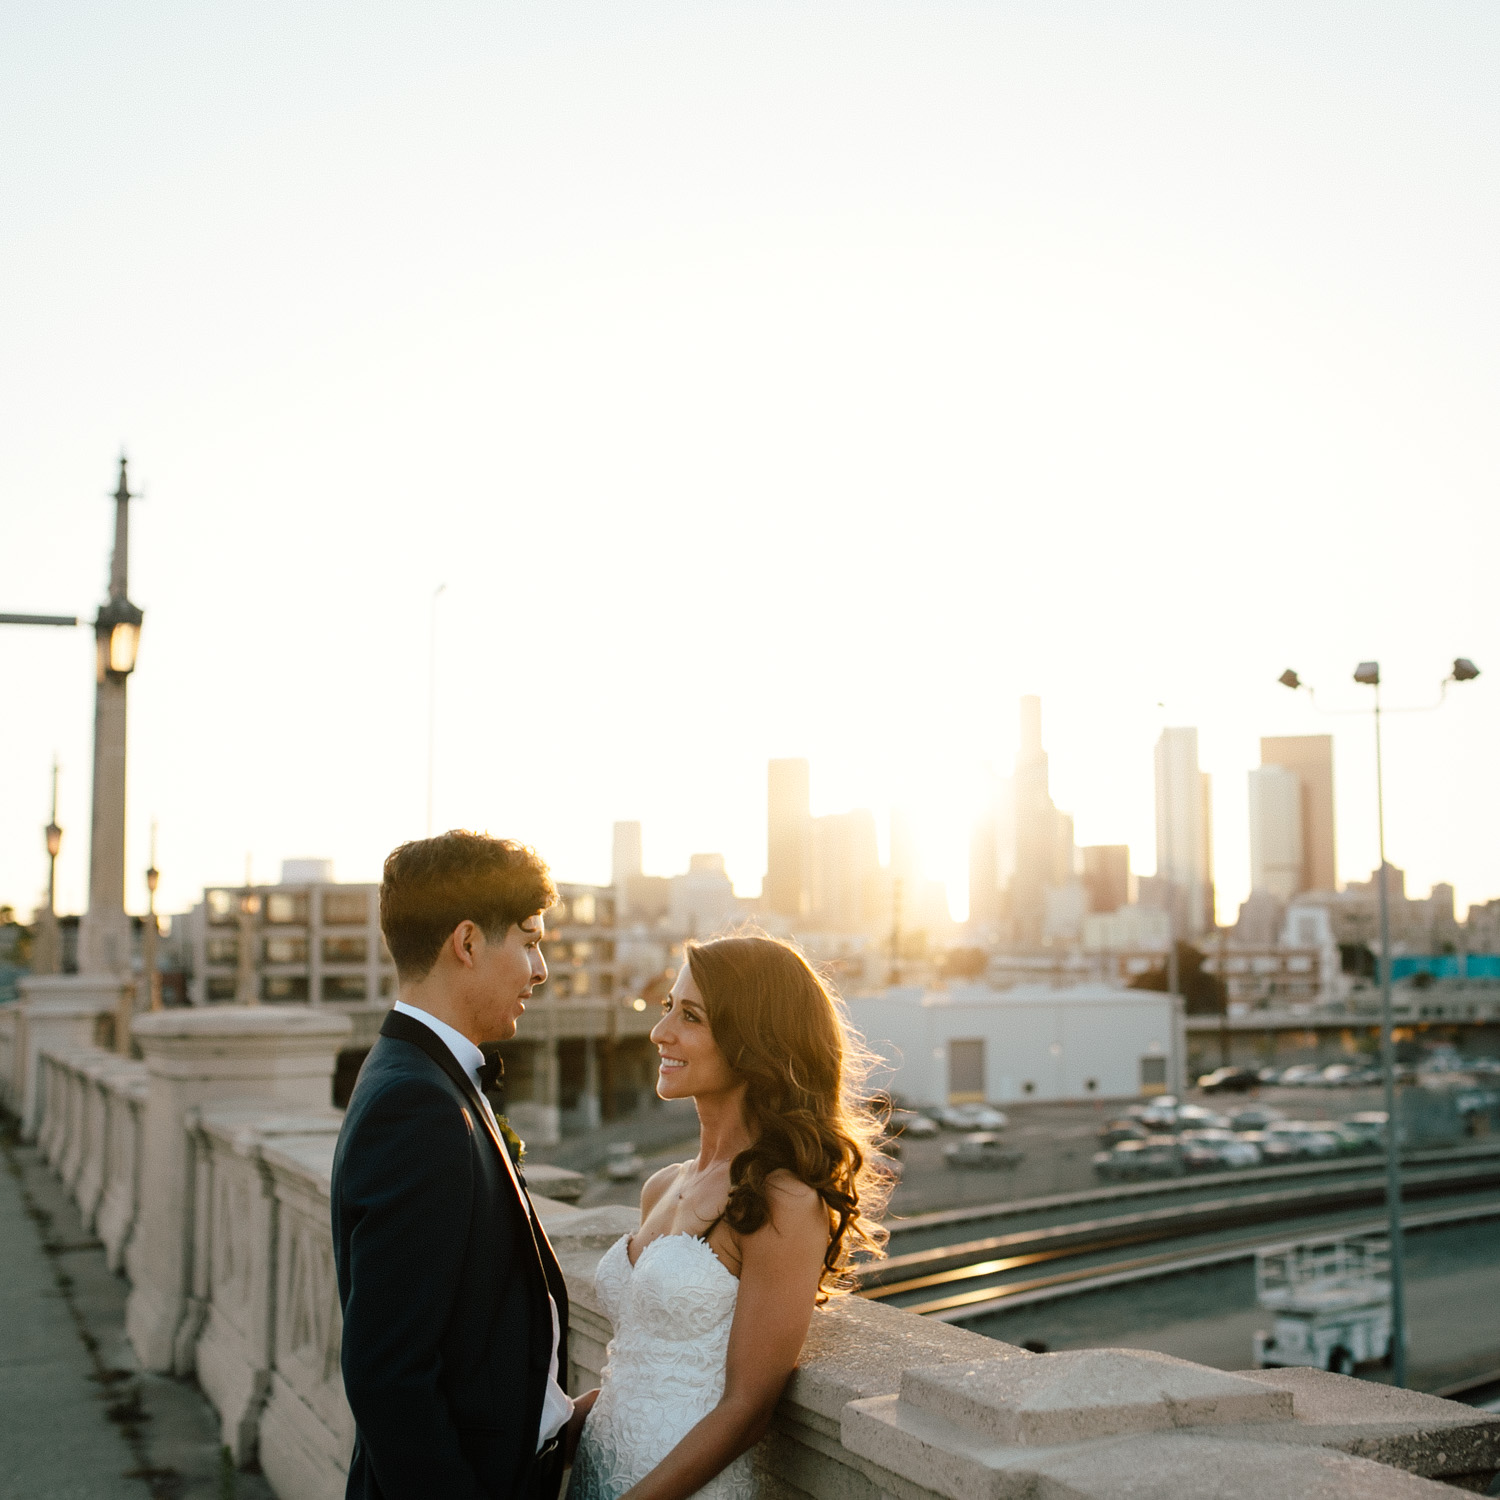 Los Angeles Wedding Photographer, Ace Hotel, Millwick Wedding - The Gathering Season x weareleoandkat 086.JPG